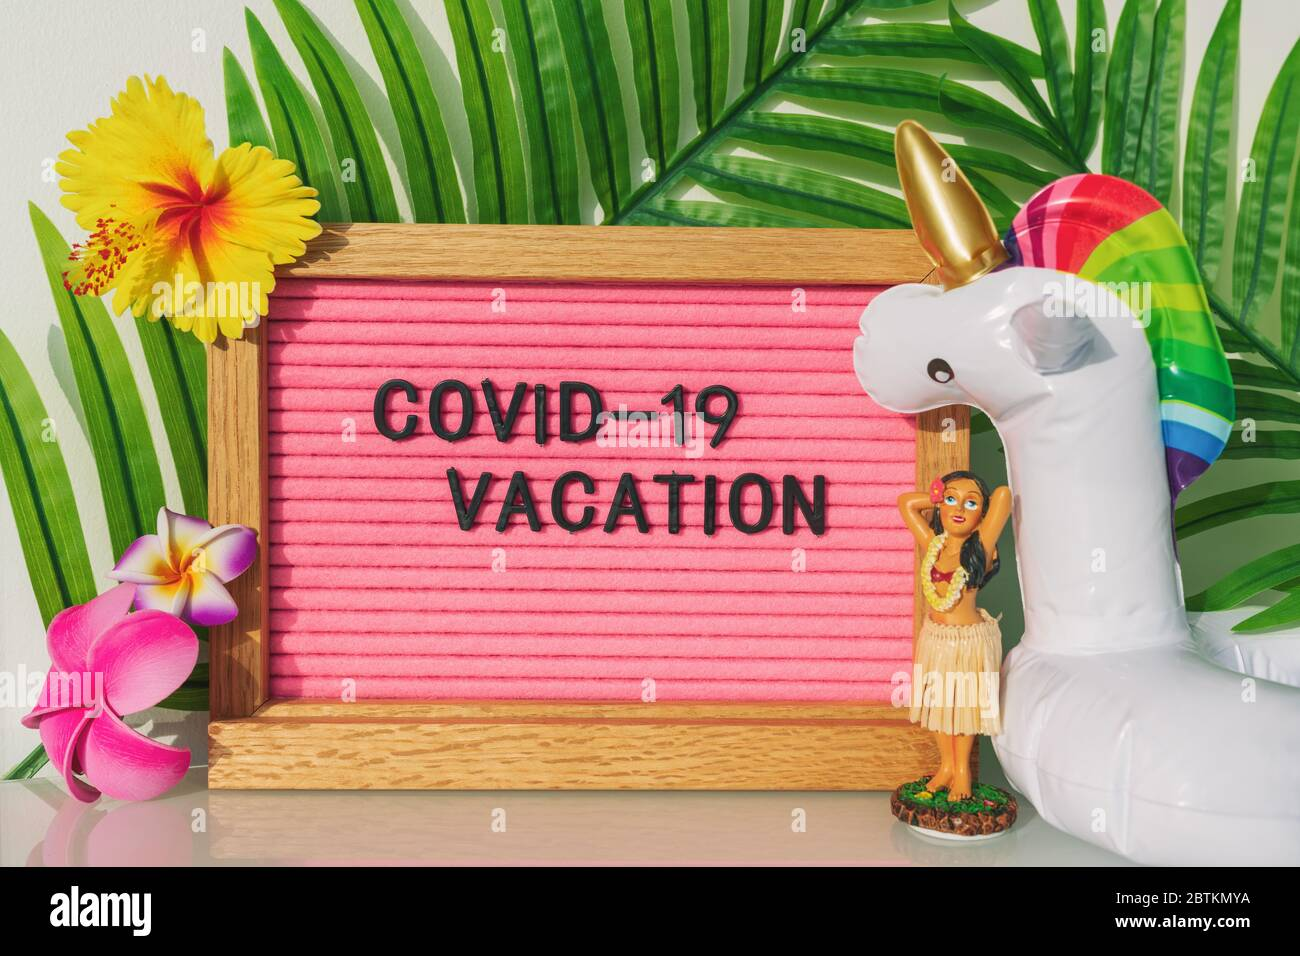 Covid 19 Vacation At Home Pink Funny Sign For Coronavirus Travel Restrictions This Summer Swimming Pool Toy Float Hula Dancer For Tropical Theme Holidays In The Backyard Stock Photo Alamy